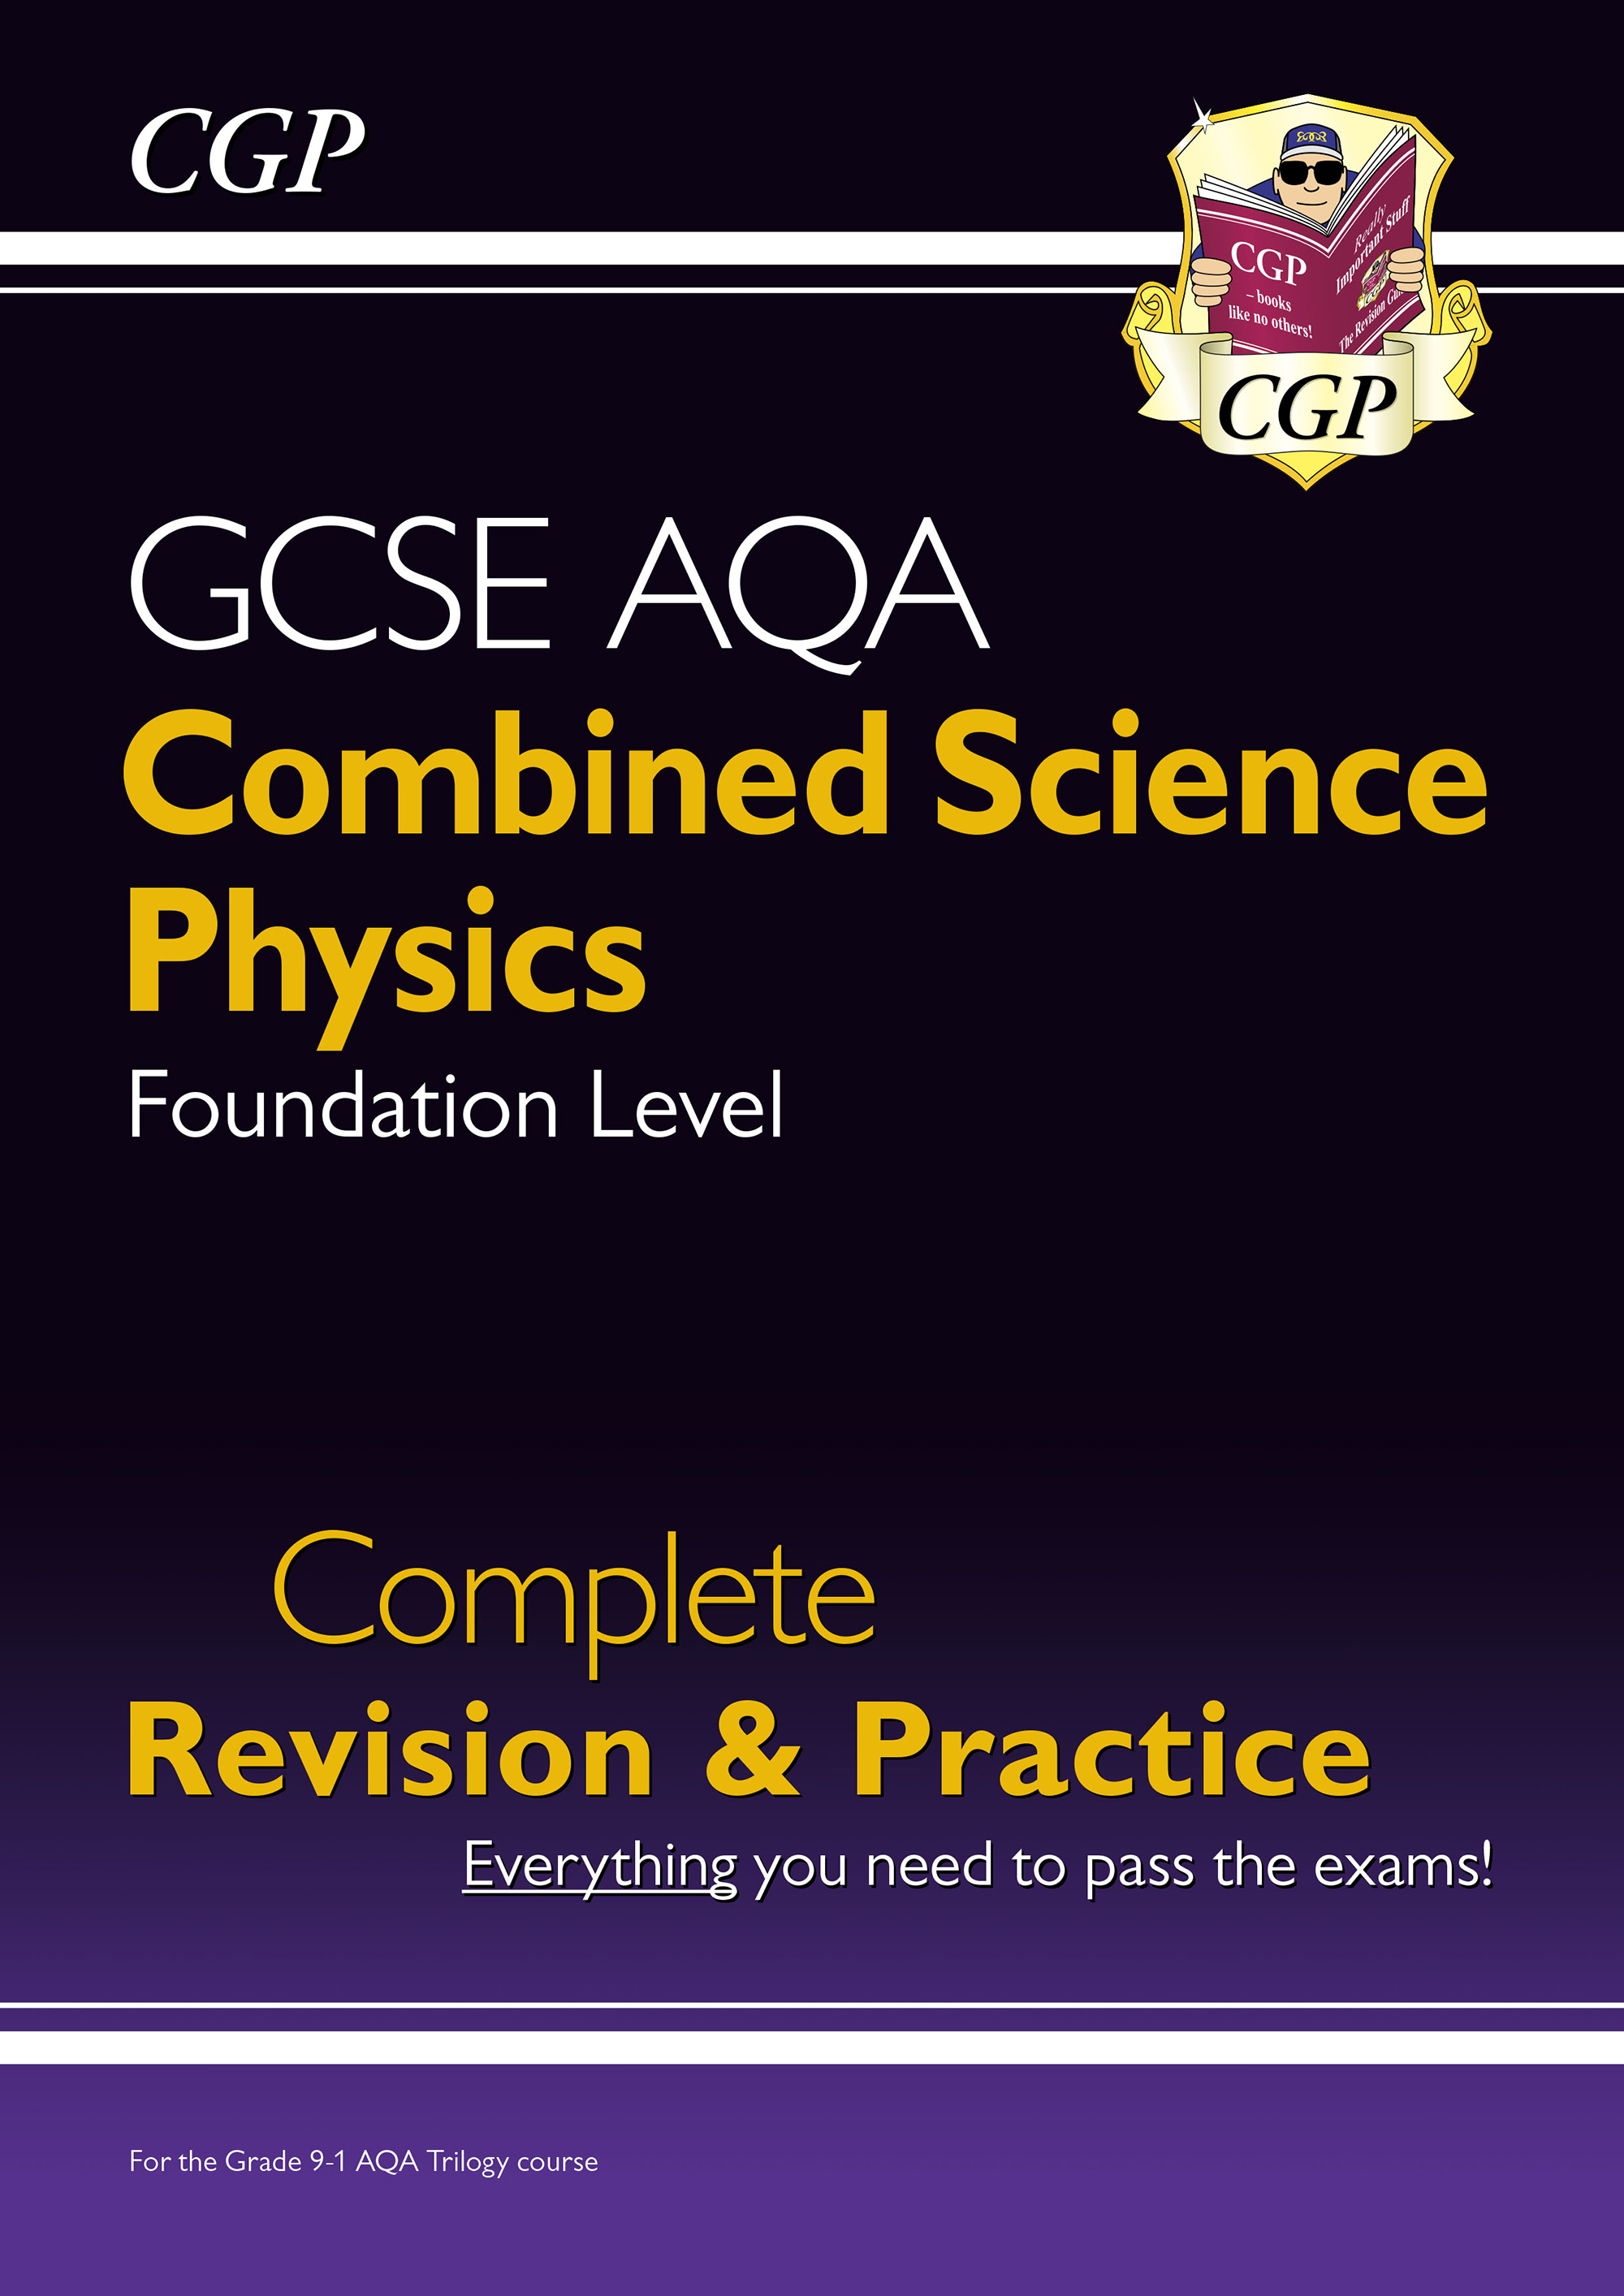 SCPAFS41DK - New 9-1 GCSE Combined Science: Physics AQA Foundation Complete Revision & Practice